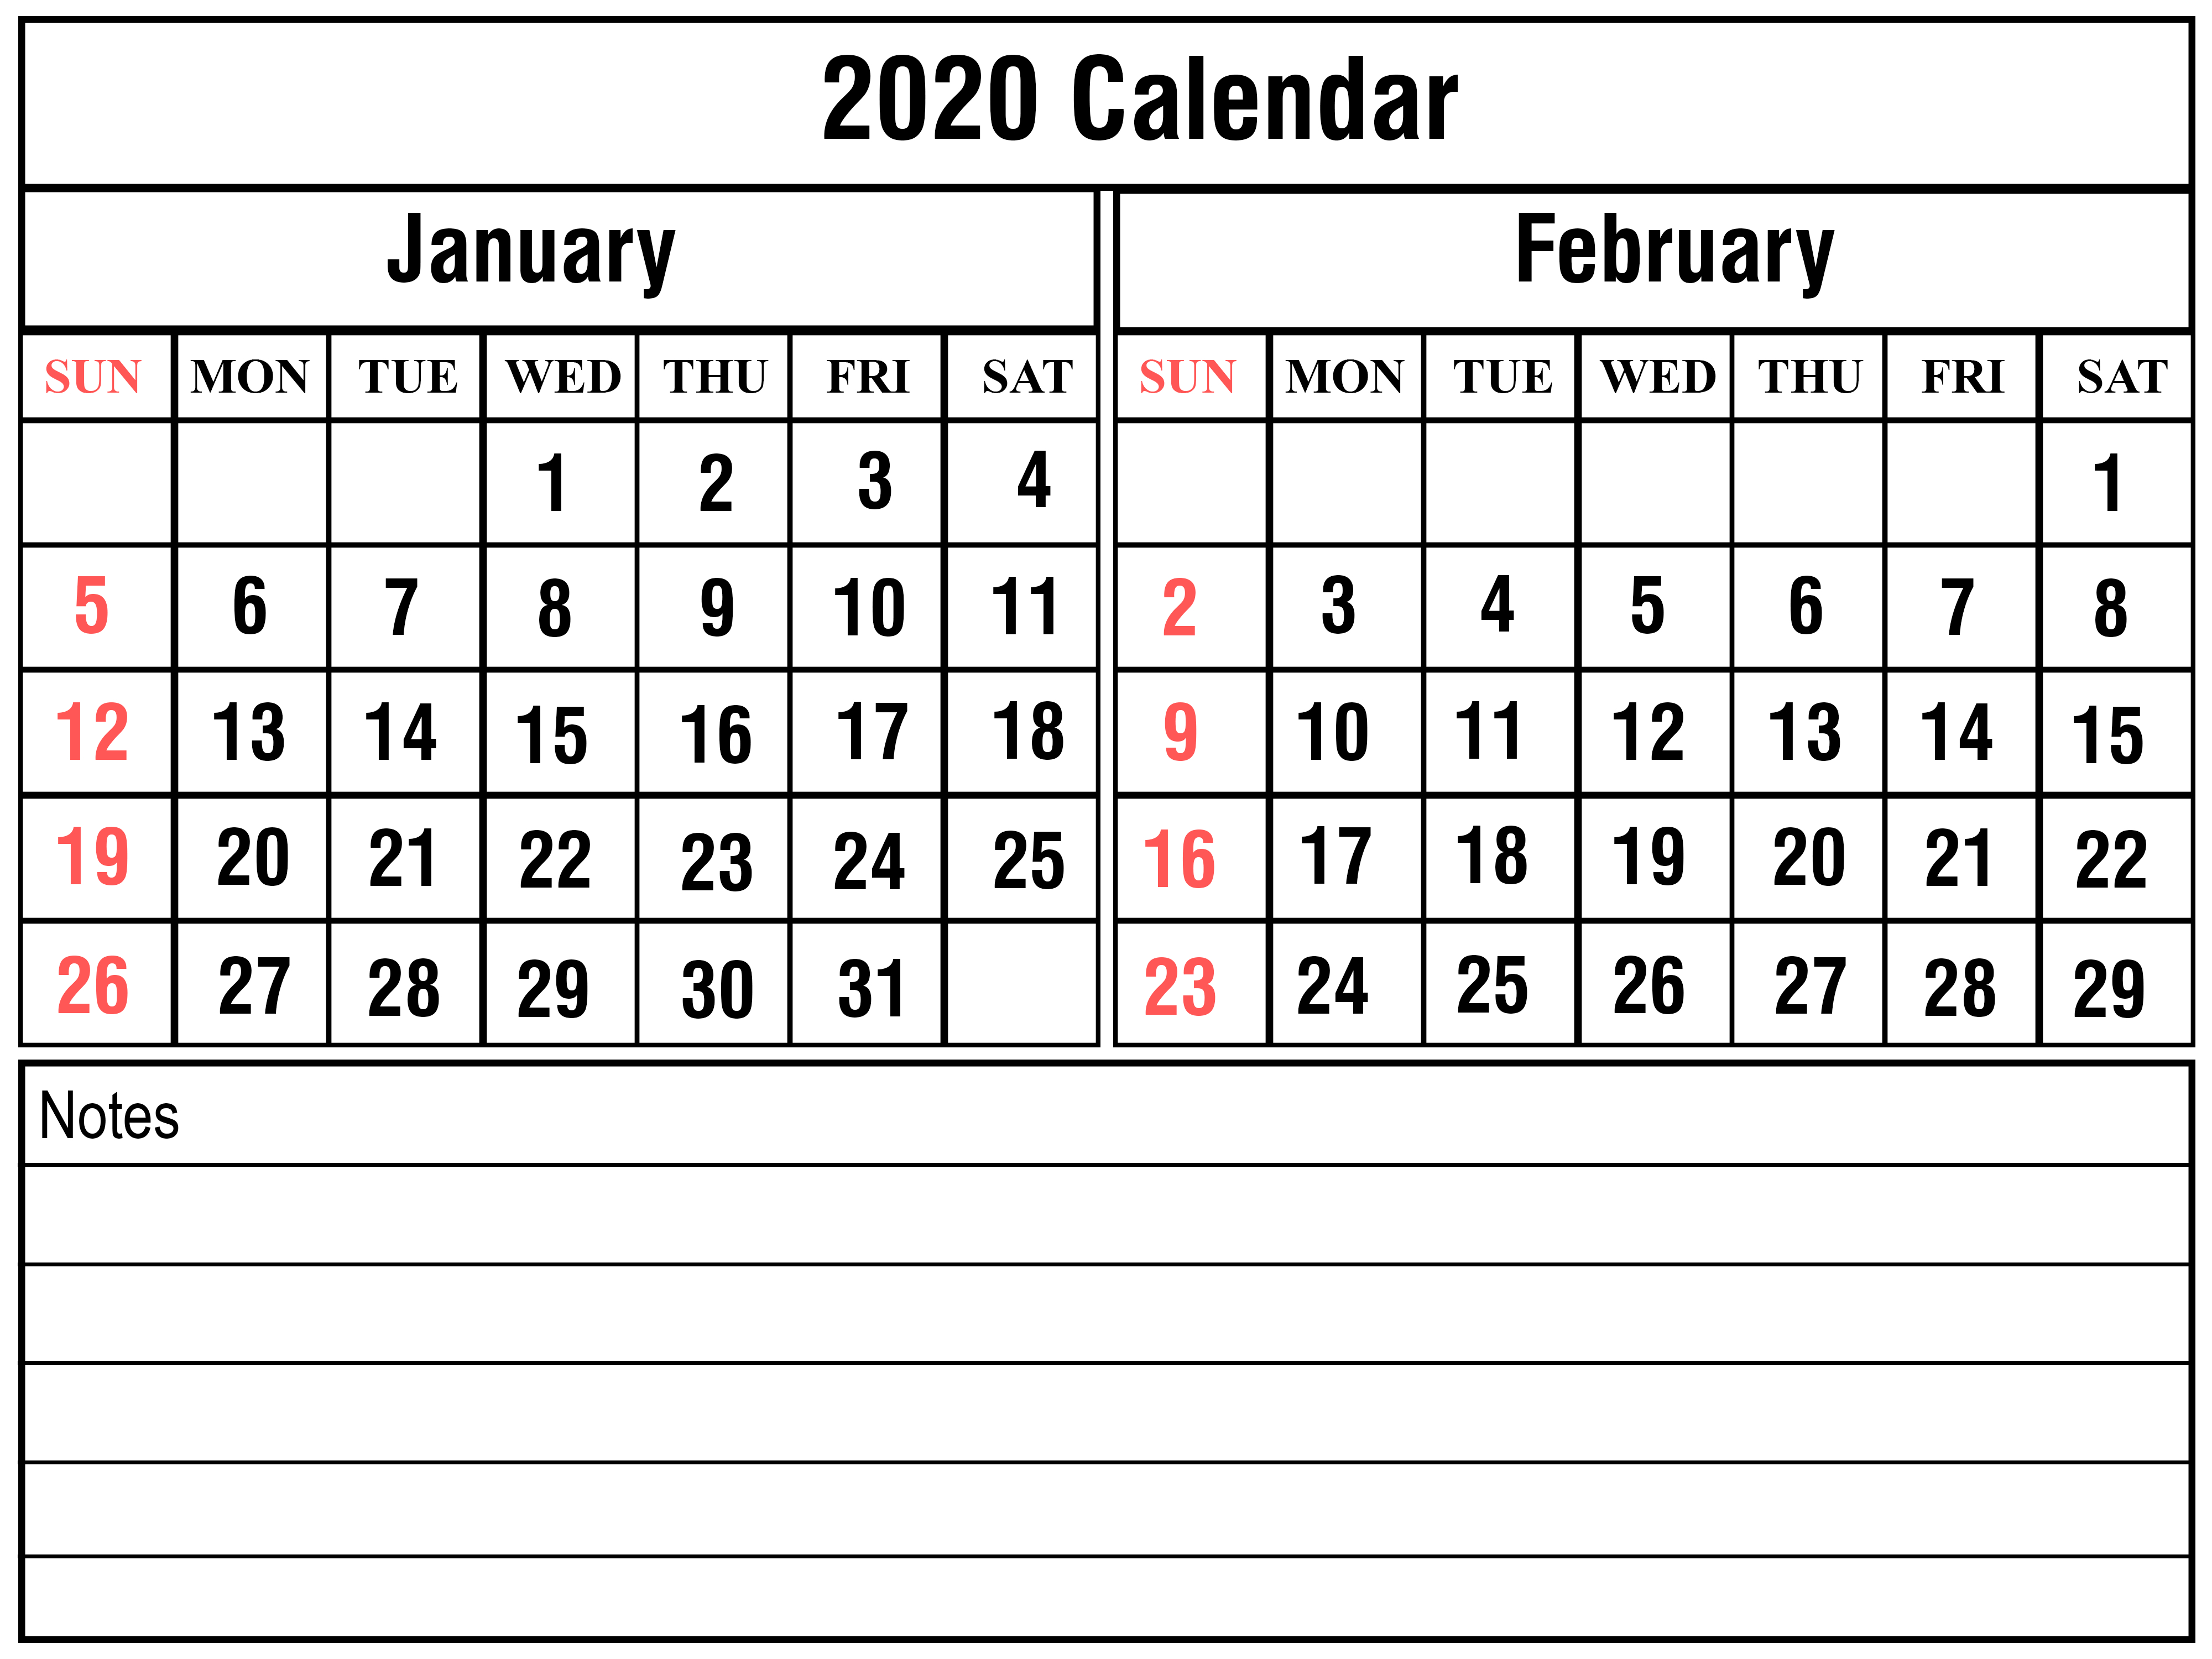 Calendar School  Free Printable & Blank Calendar (Yearly pertaining to January 2020 Waterproof Calendar